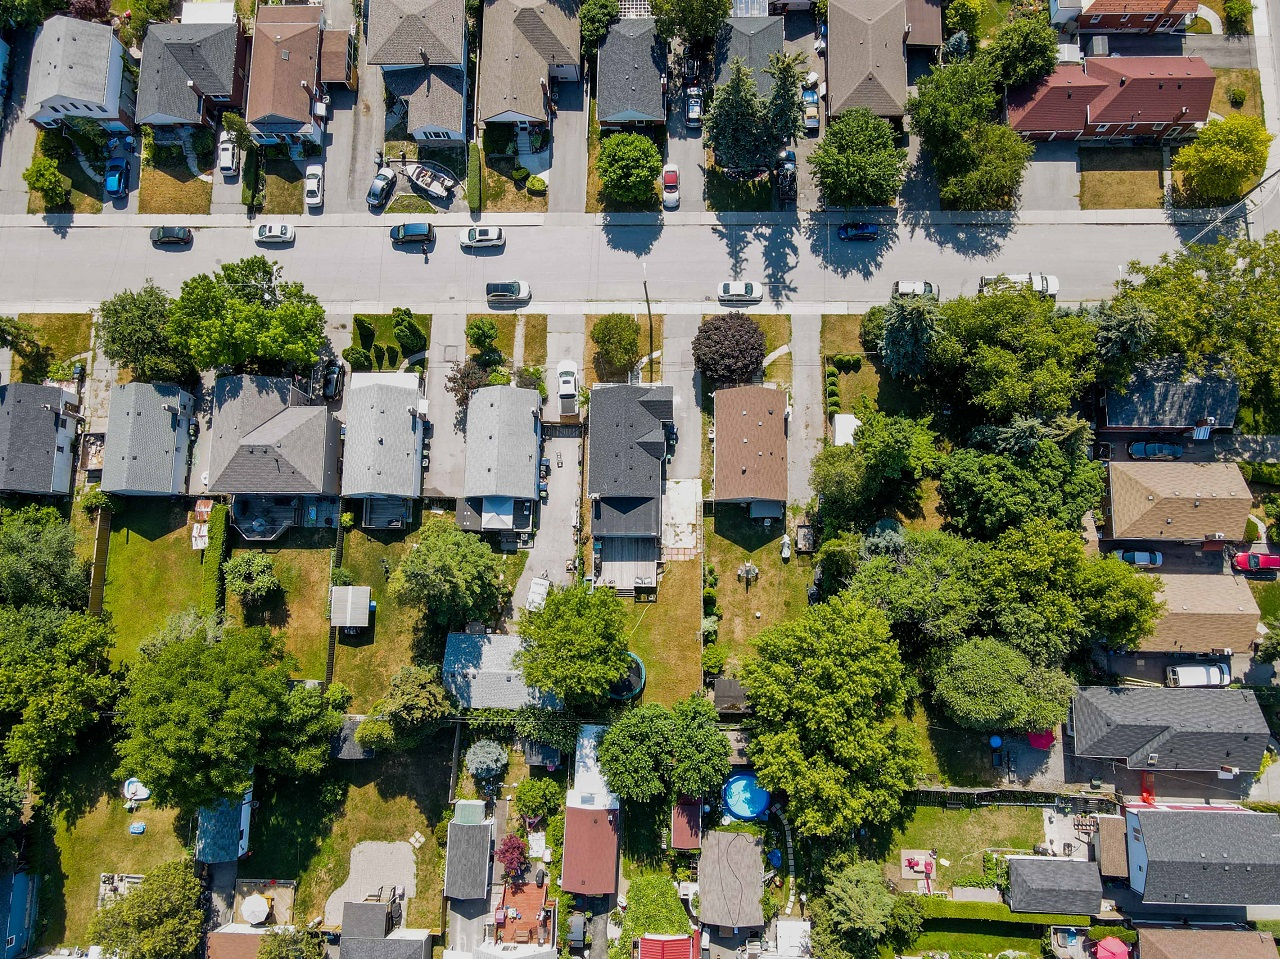 Aerial photo of houses in suburbs of Toronto.